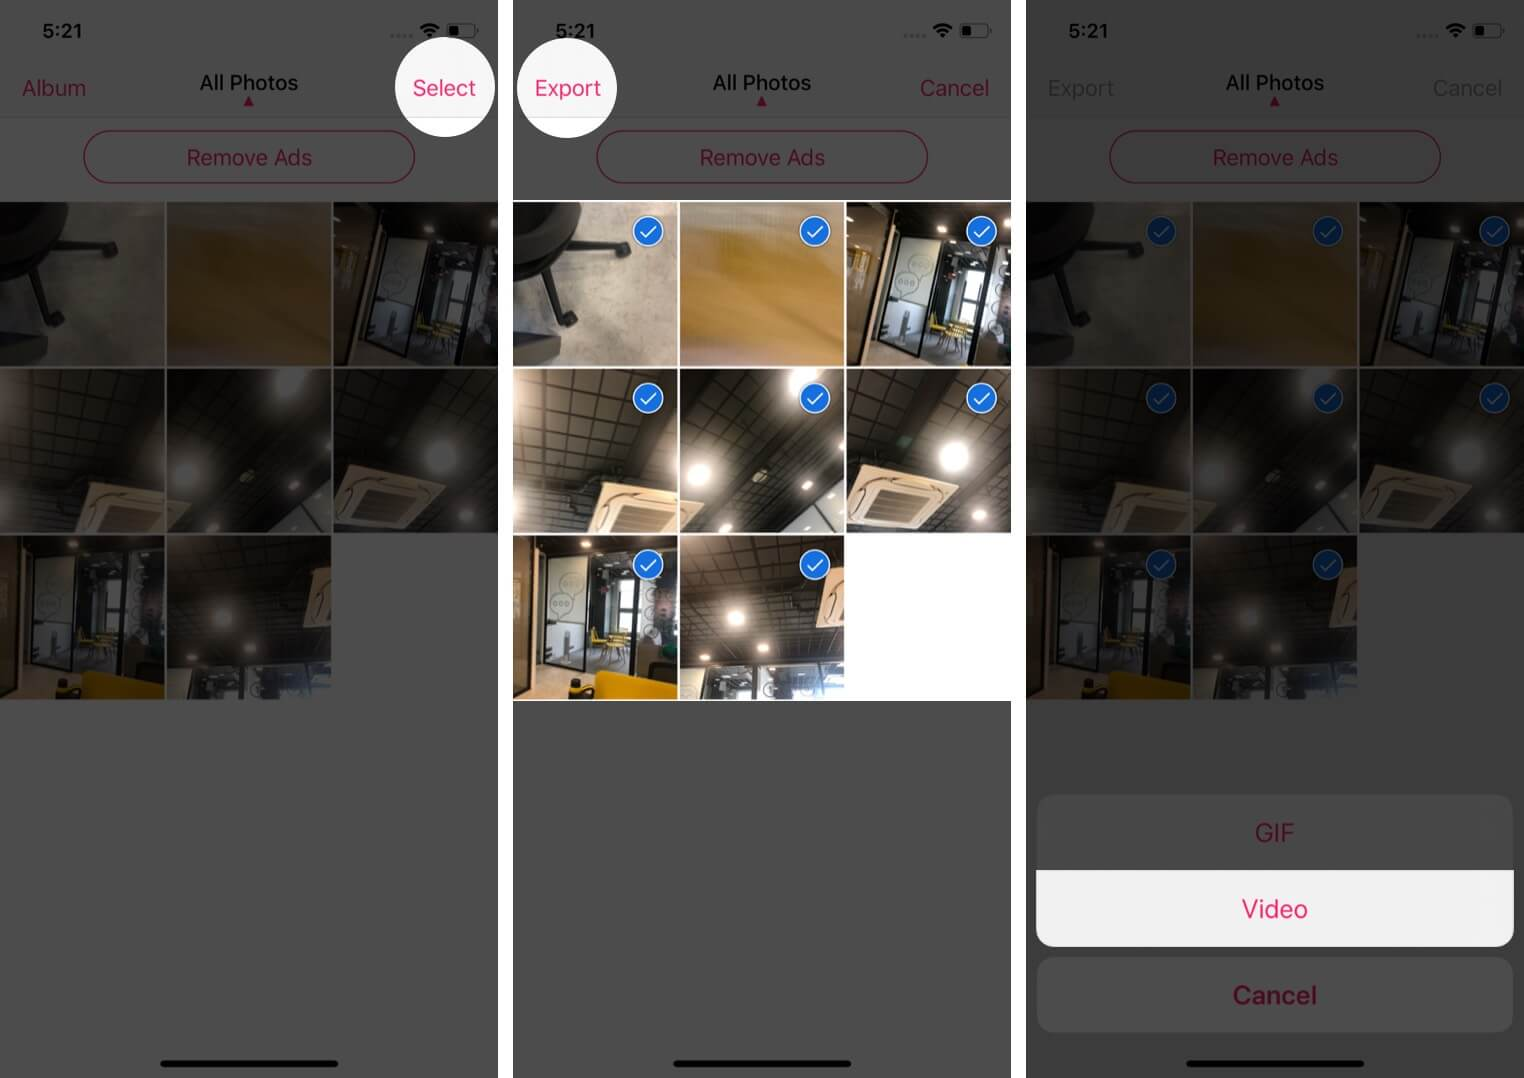 select photos tap on export and choose video to turn live photos into video using third-party app on iphone